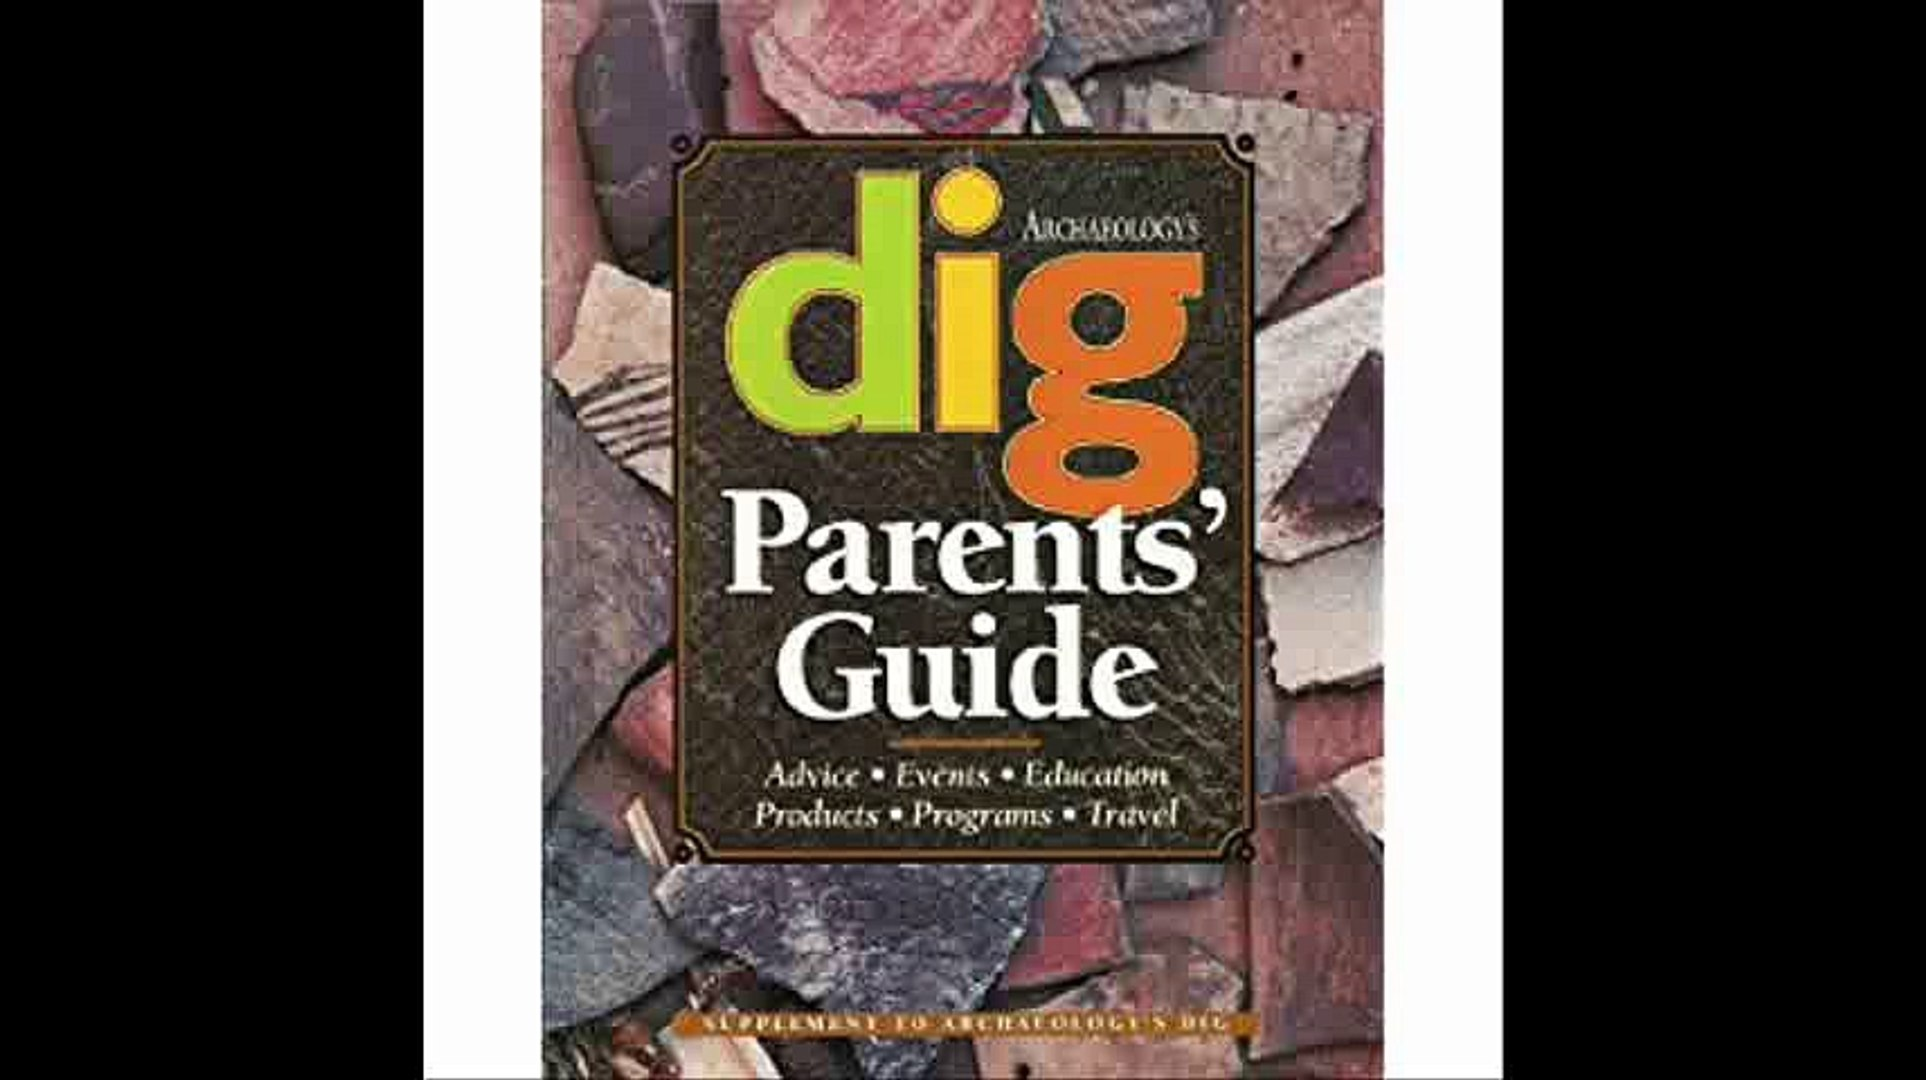 Parents' Guide to Archaeology Advice, Events, Education, Products, Programs, and Travel (Dig Su